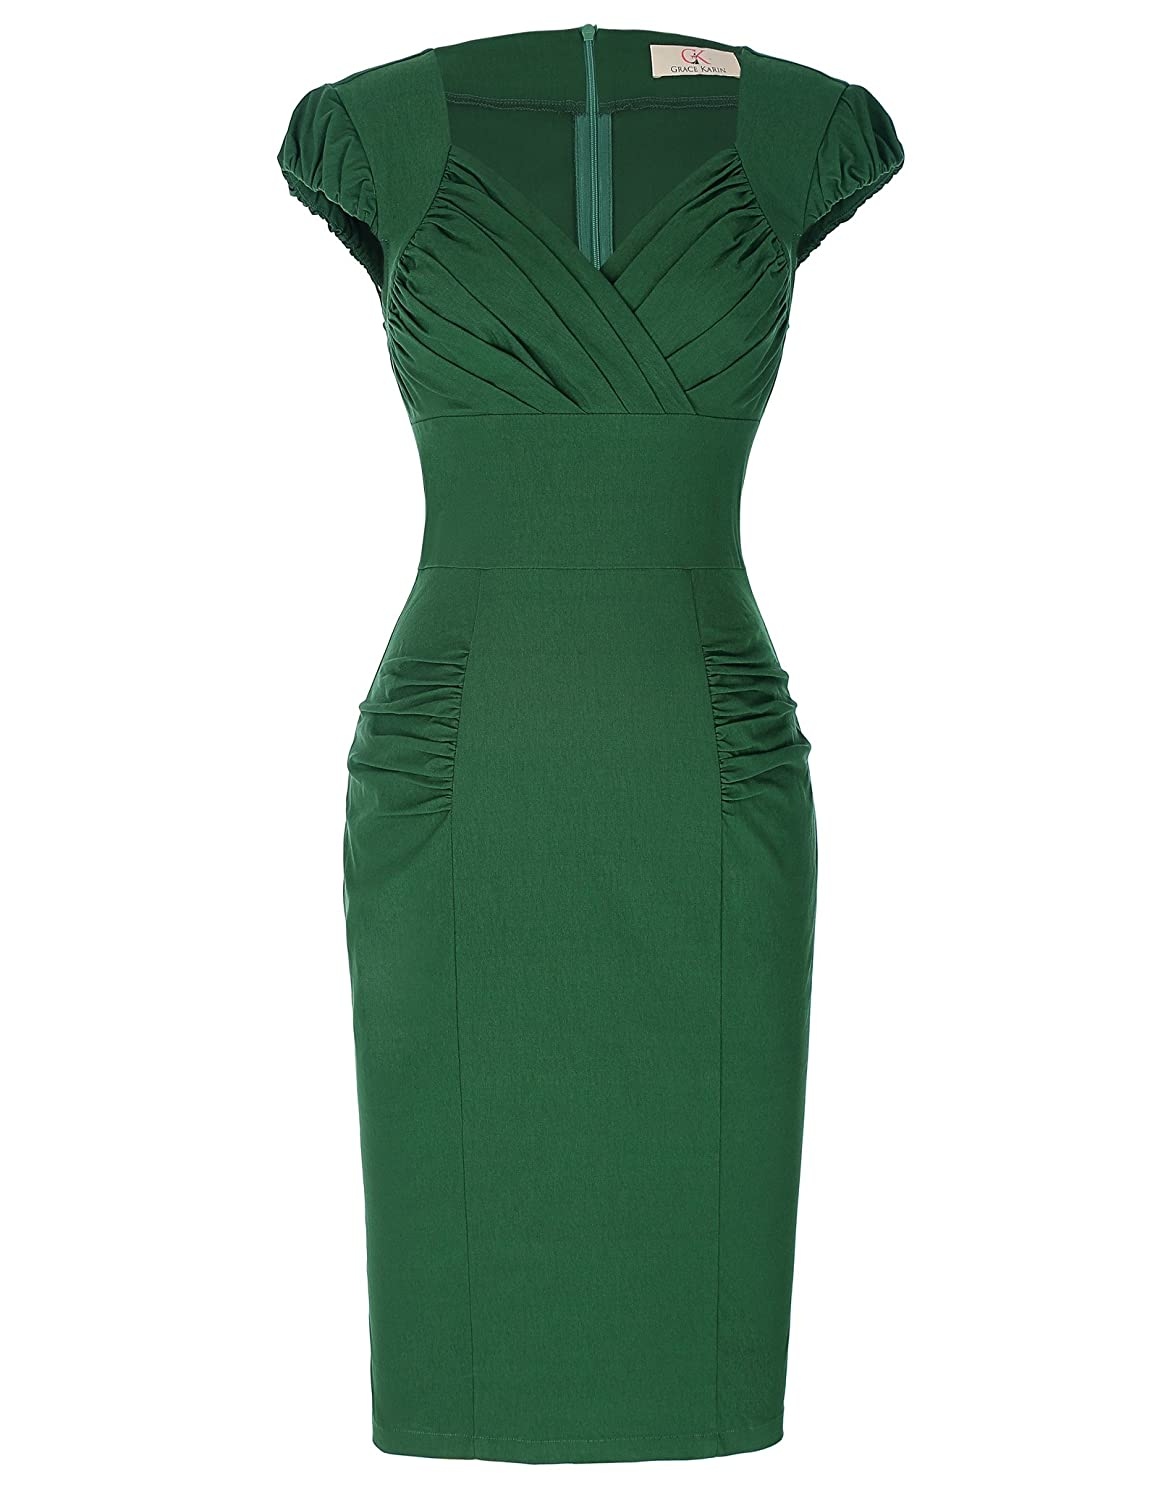 Rockabilly Dresses | Rockabilly Clothing | Viva Las Vegas GRACE KARIN Womens 50s Vintage Pencil Dress Cap Sleeve Wiggle Dress CL7597 $28.99 AT vintagedancer.com